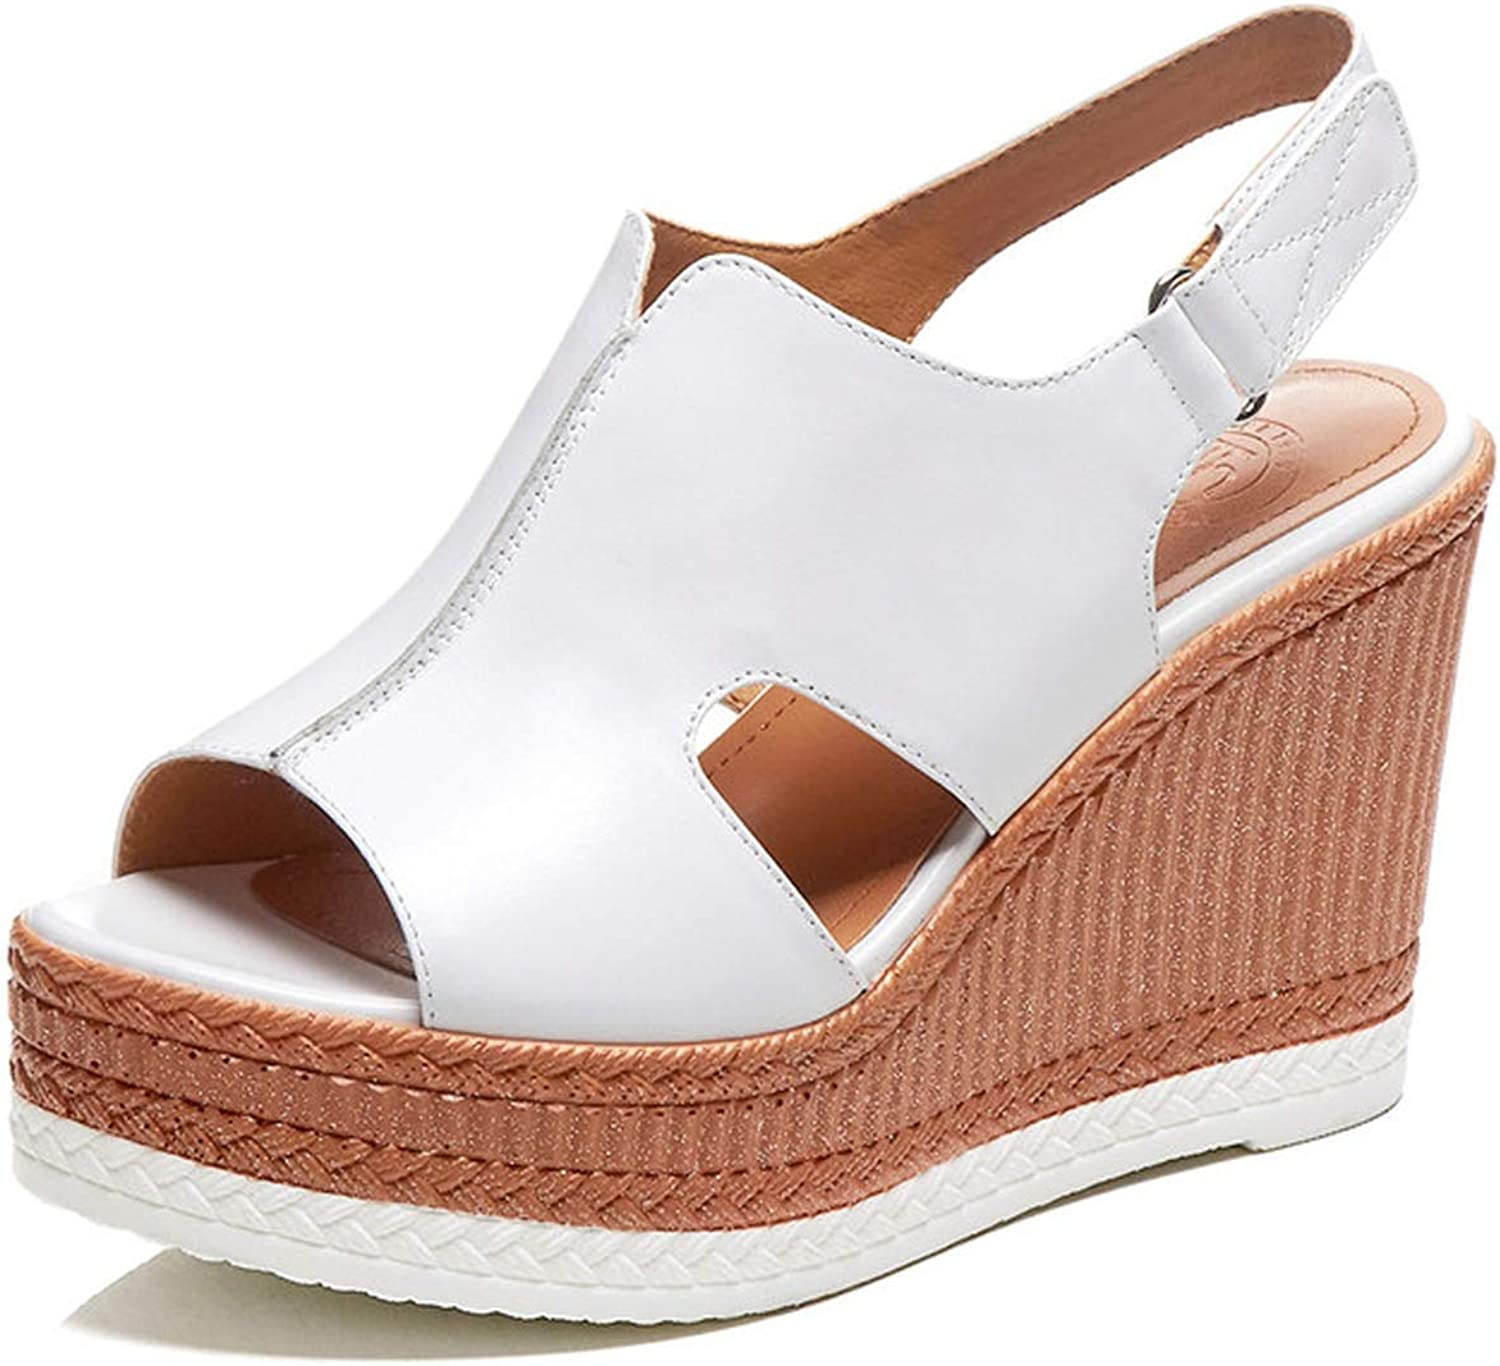 Longbao 2019 New Genuine Leather Wedge Women Sandals Platforms High Heels Woman Party shoes